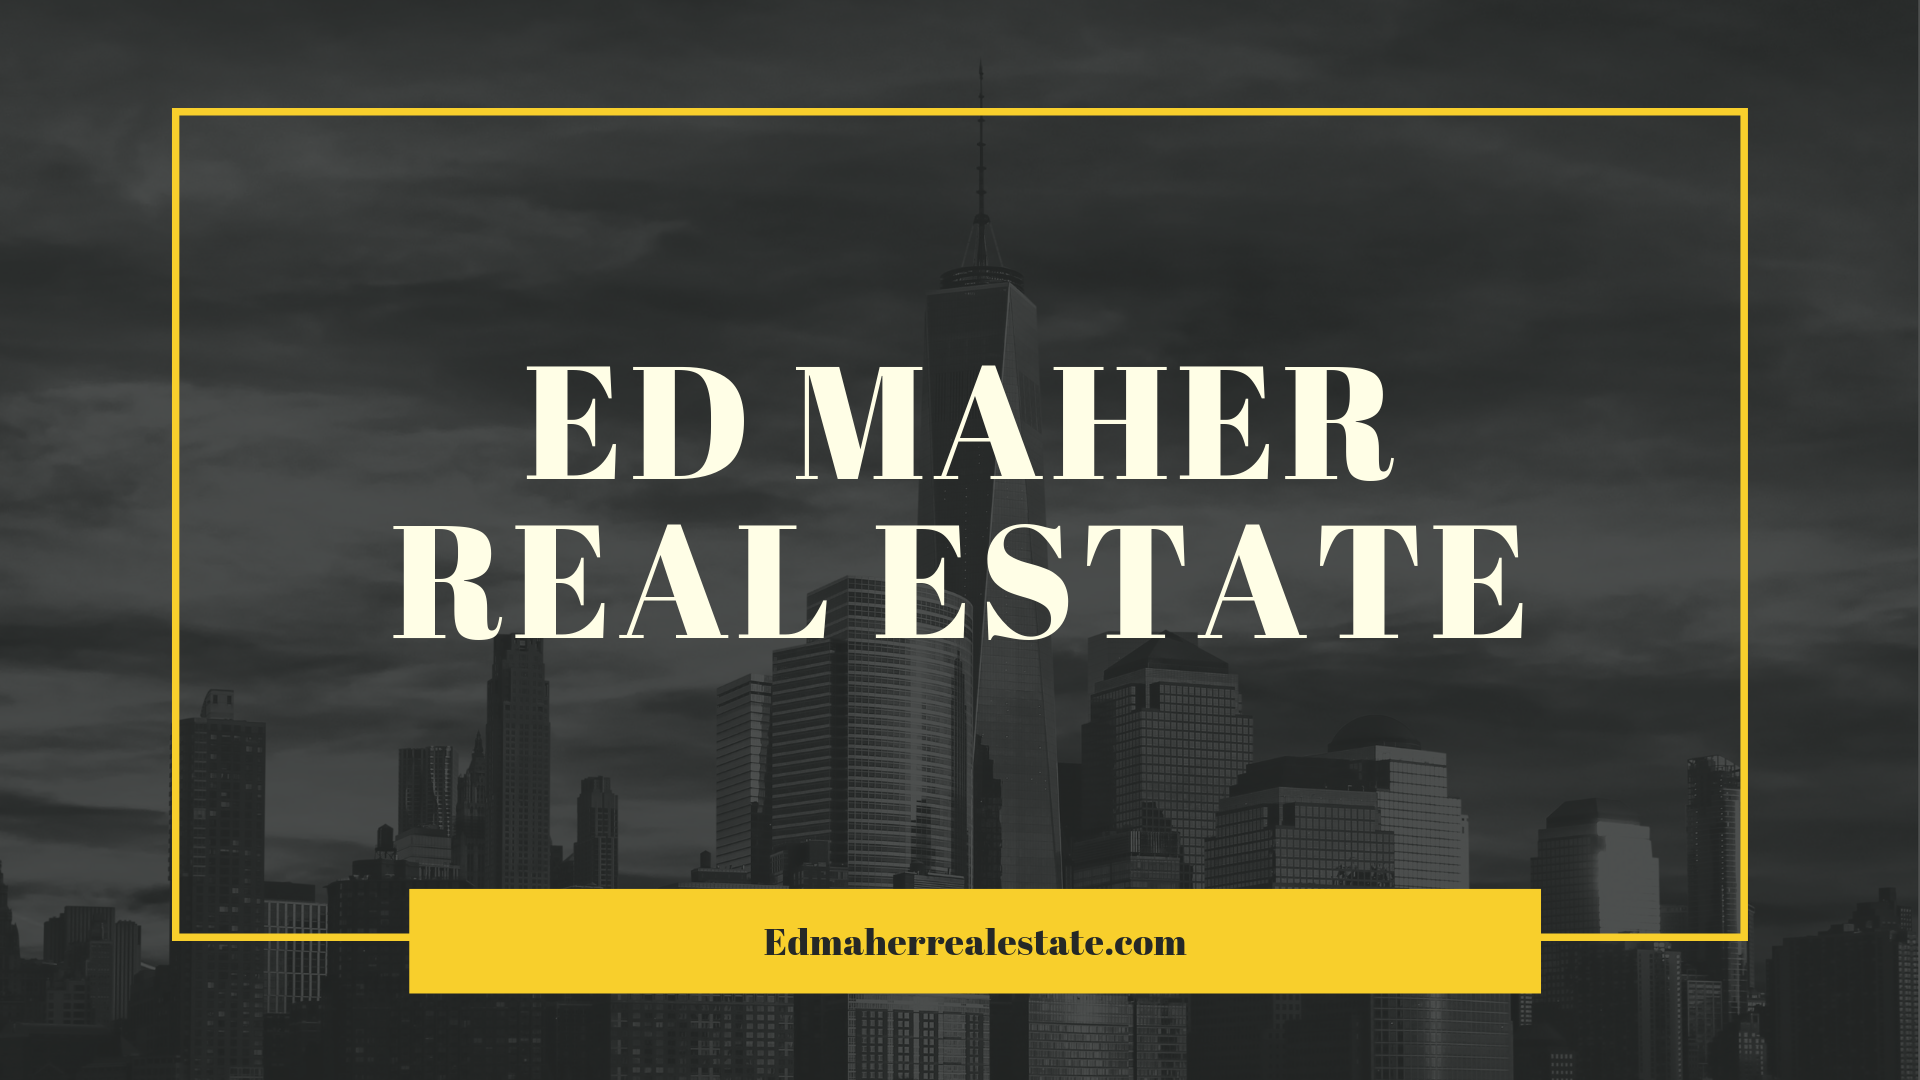 Ed Maher Real Estate